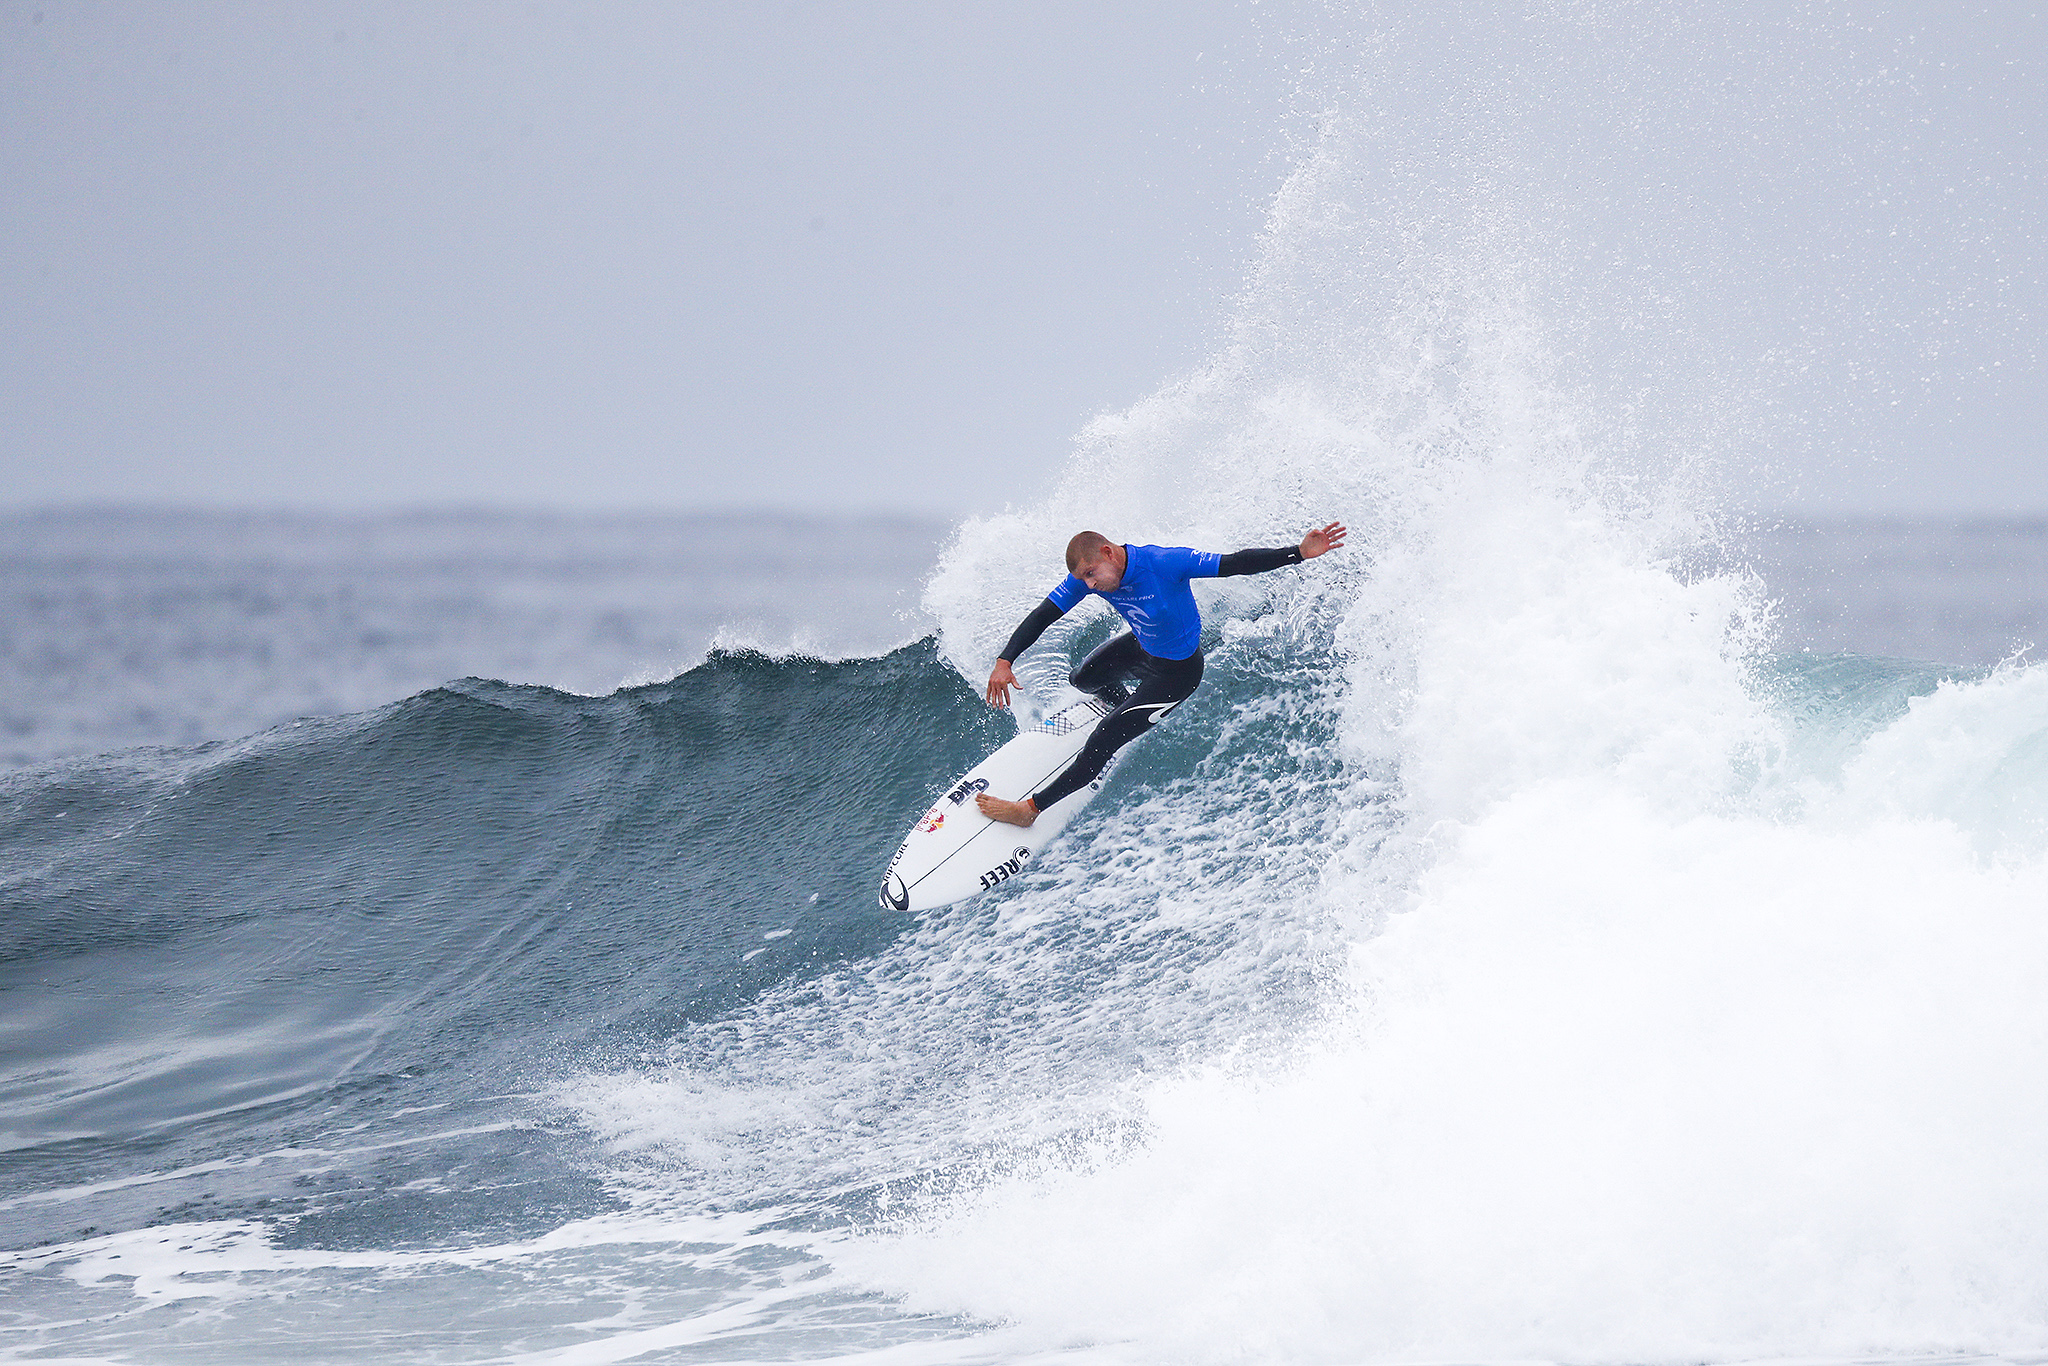 Mick Fanning of Australia placed second in Heat 1 of Round One at the Rip Curl Pro Bells Beach.